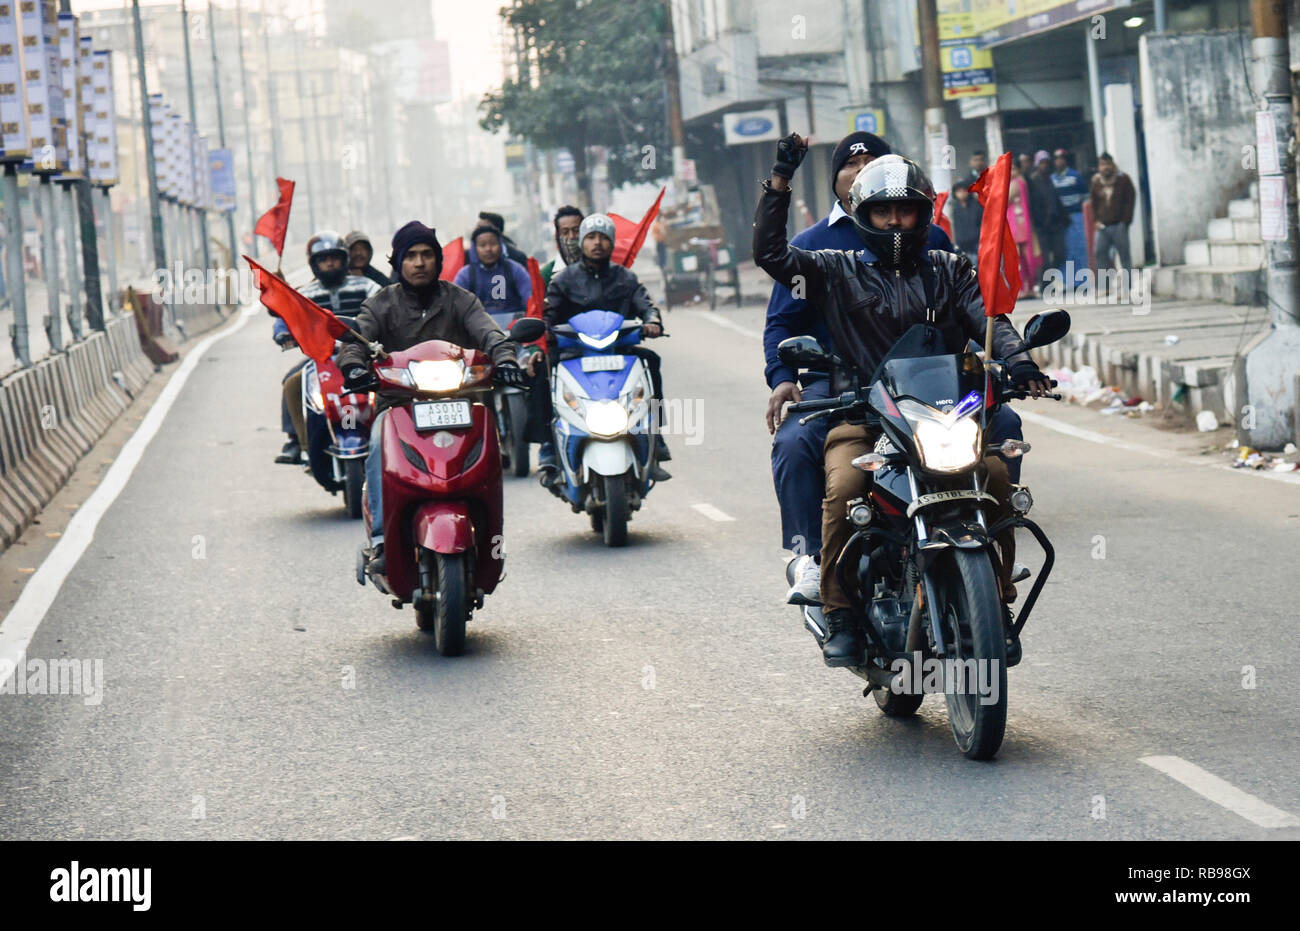 Centre of Indian Trade Unions (CITU) nationwide strike. Guwahati, Assam, India. Jan 8, 2019.  activists from the Centre of Indian Trade Unions (CITU), which is politically aligned with the Communist Party of India (Marxist), wave flags as they take part in a rally next to closed shops during a nationwide strike in Guwahati, Nearly 200 million Indian workers went on a two-day nationwide strike January 8 to protest 'anti-labour policies' of Prime Minister Narendra Modi's government, triggering sporadic violence in some cities. PHOTO: DAVID TALUKDAR. Credit: David Talukdar/Alamy Live News - Stock Image